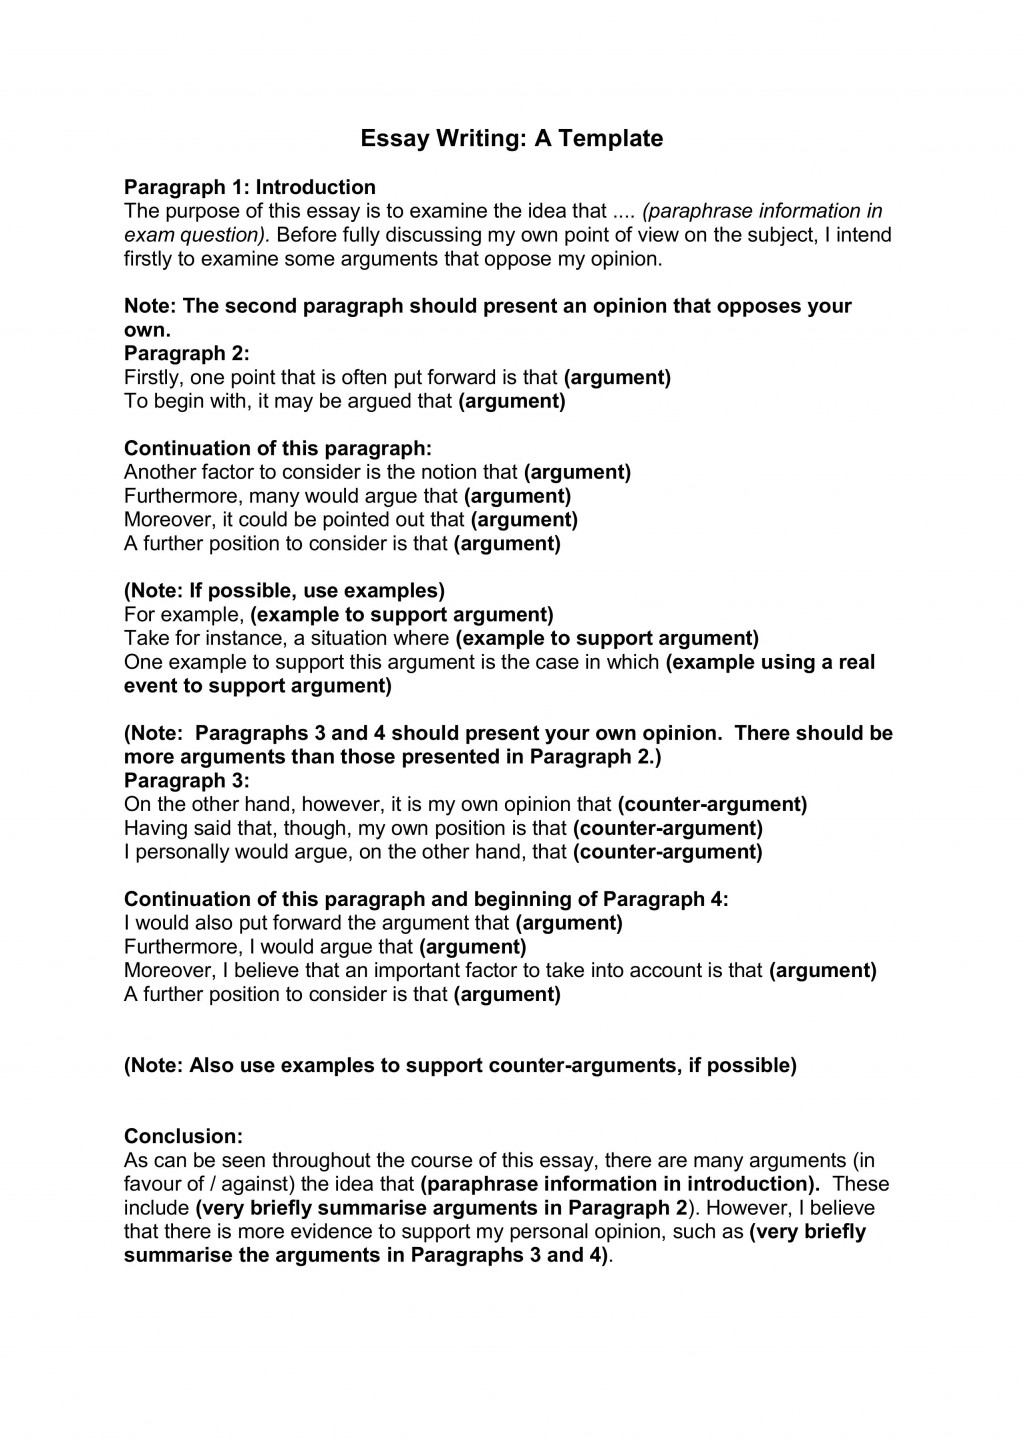 019 I Believe Essay Examples Example Image Writing Homework Service Byassignmentdepa Good This Topics Template For P Phenomenal Personal College Large